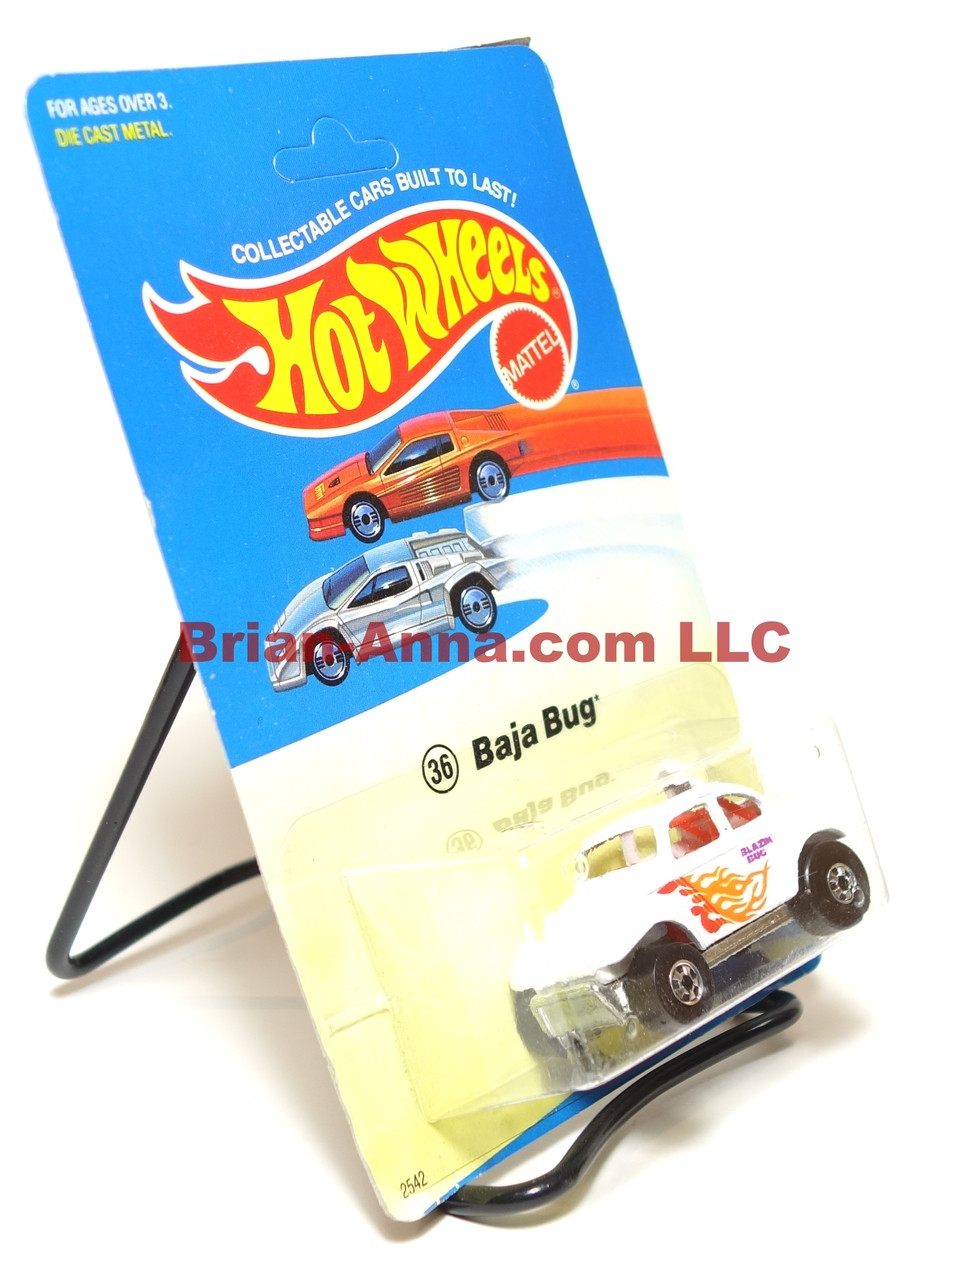 Hot Wheels Experimental Card, White Baja Bug, Blackwall, Malaysia base